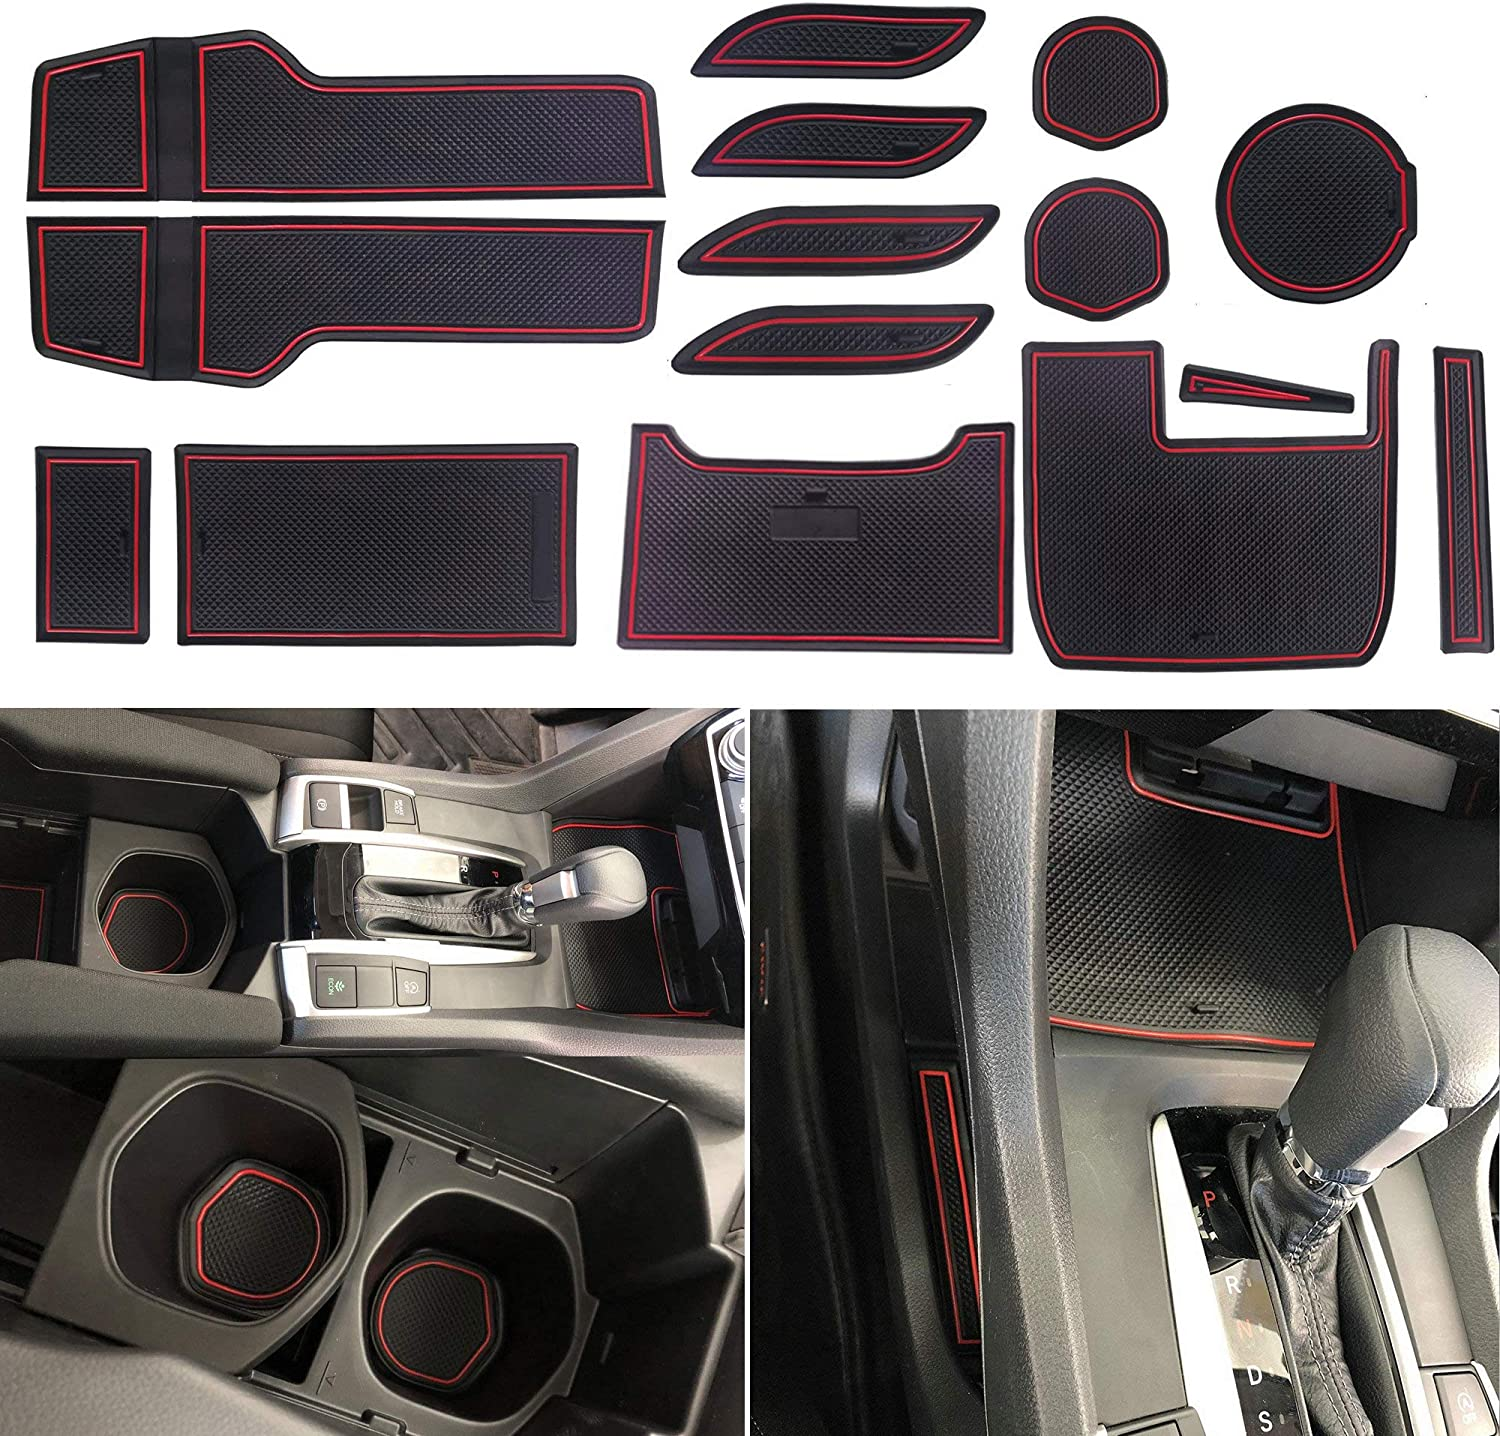 Red Sporthfish Non-Slip Anti-dust Custom Fit Cup Holder and Door Liner Accessories for 2017 2018 2019 Ford F-150 Ford F150-28 pcs Set